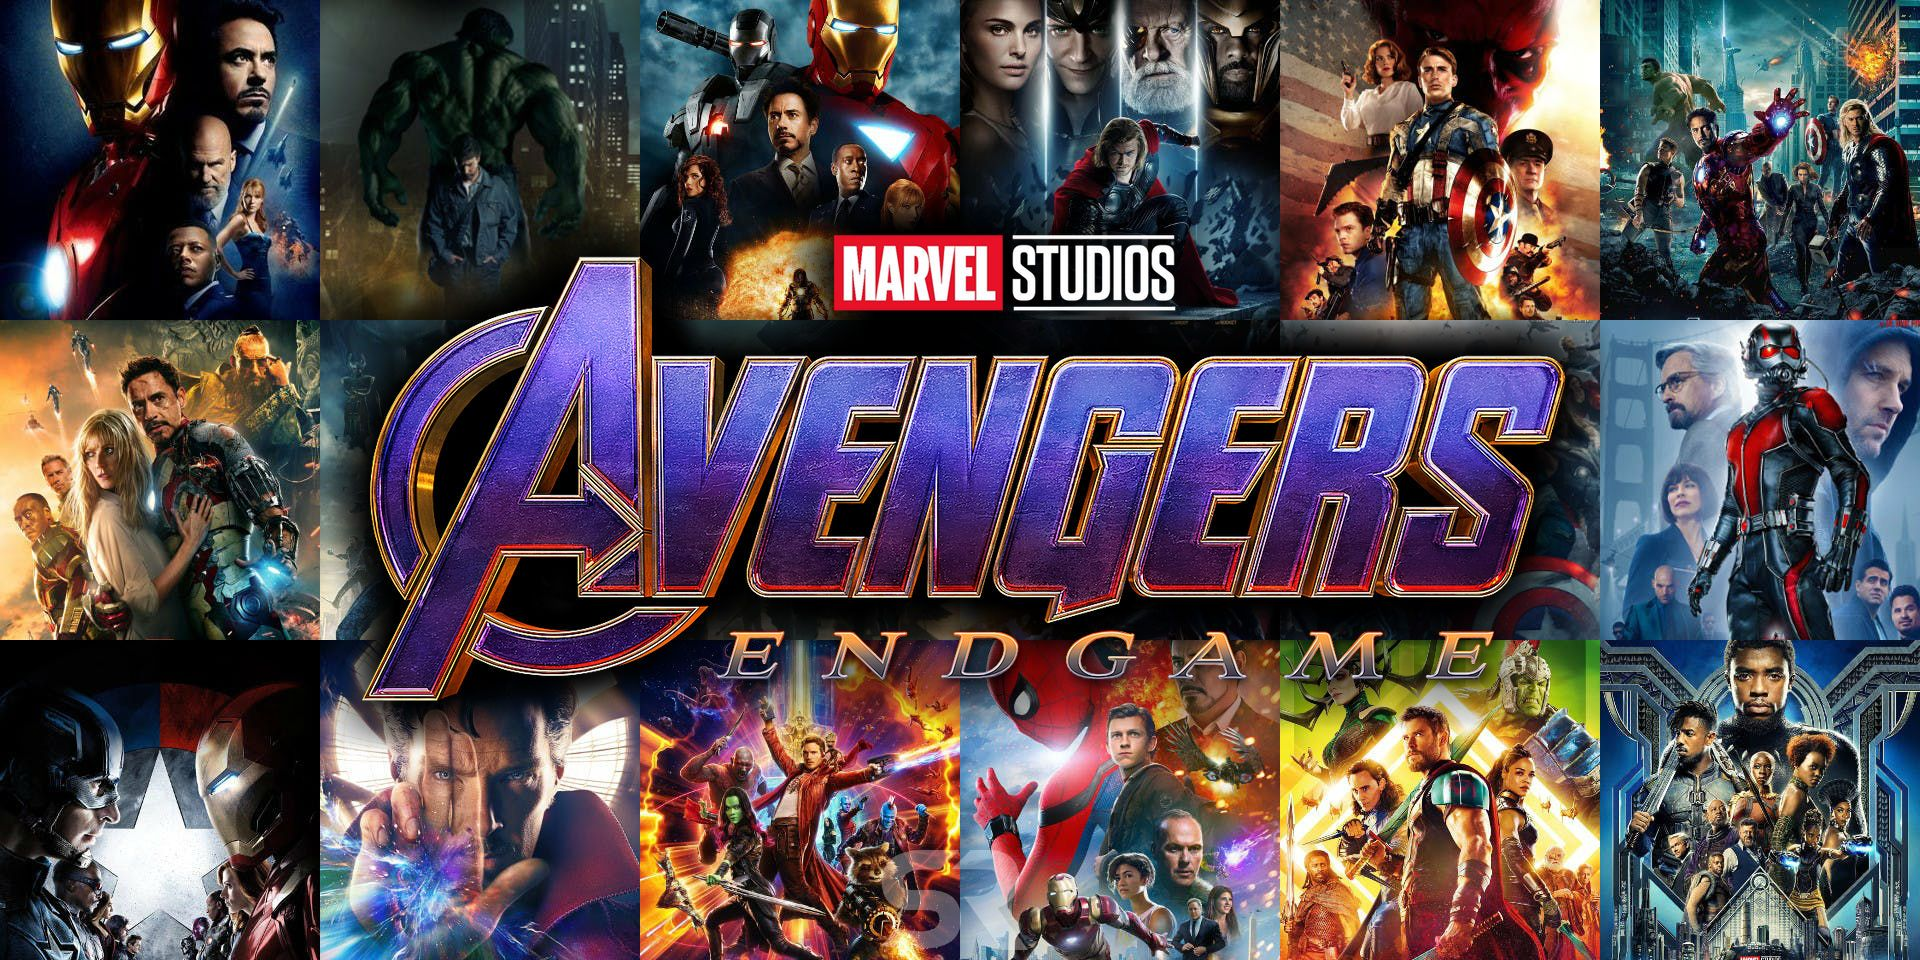 Now The Avengers: Endgame Is the Highest-Grossing Film of 2019 in India